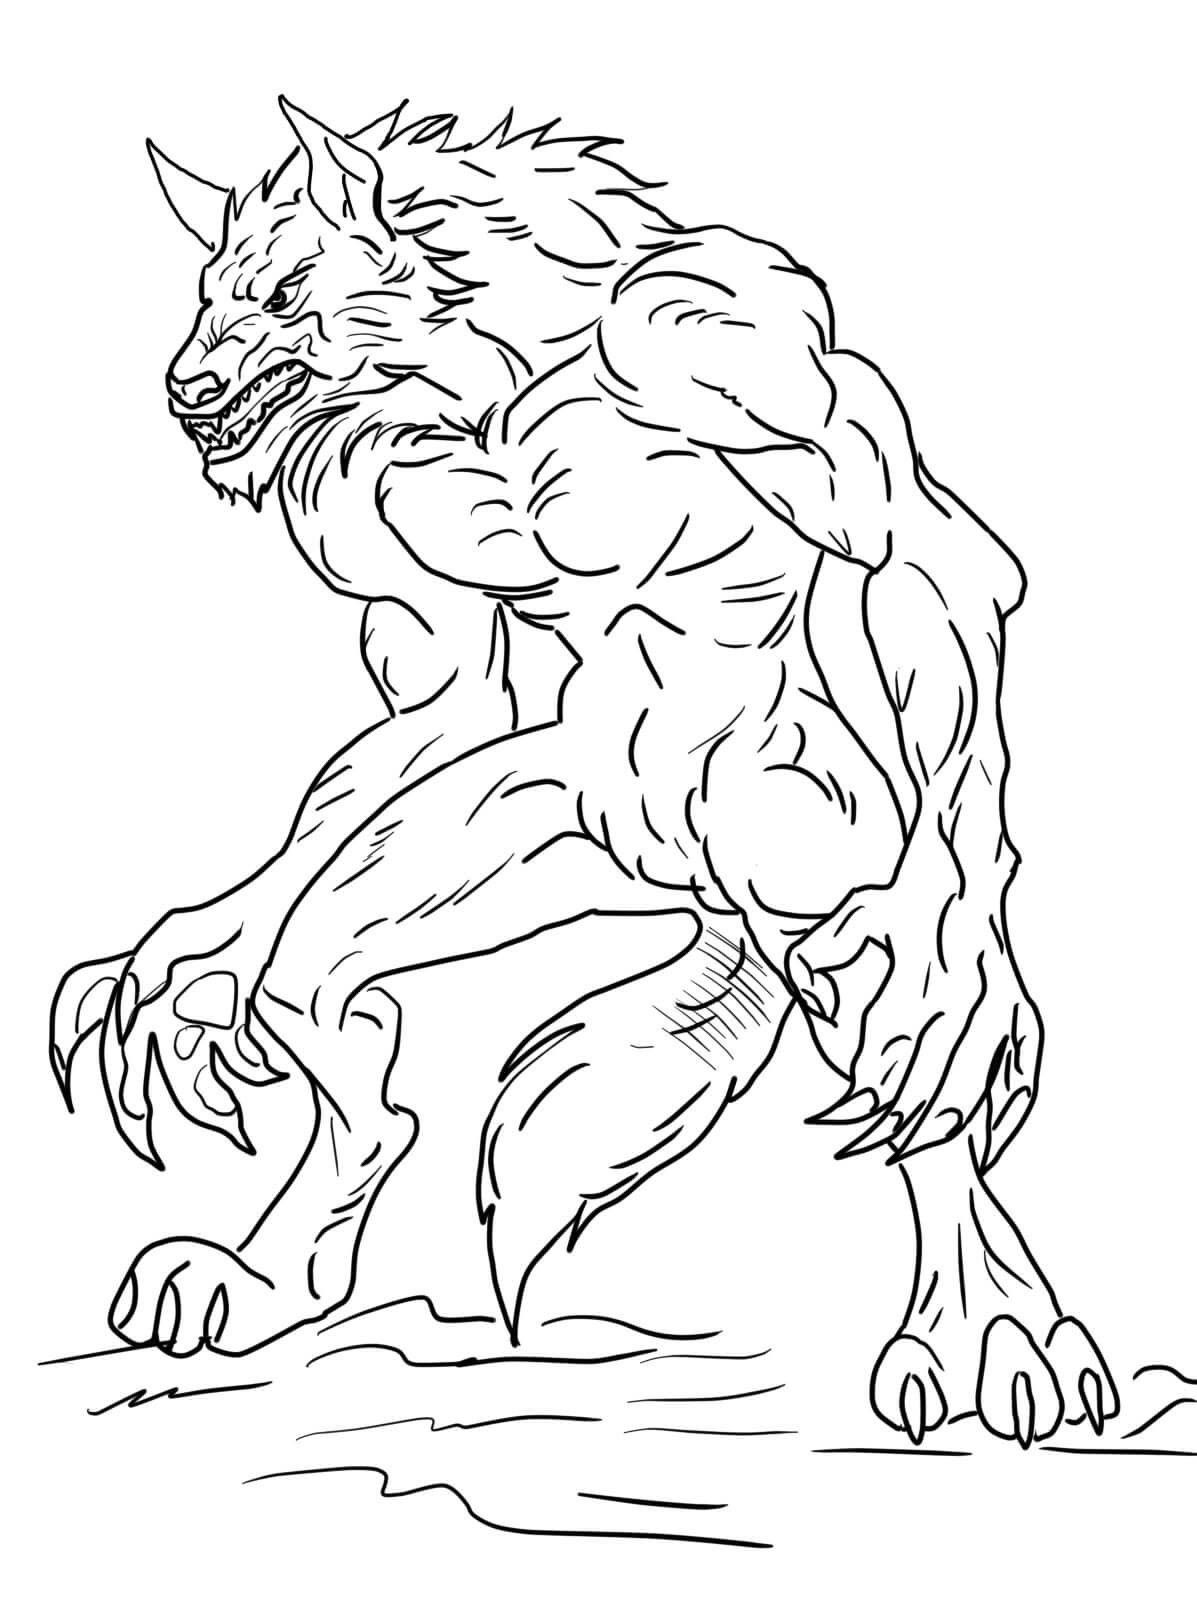 Werewolf Printable Coloring Pages